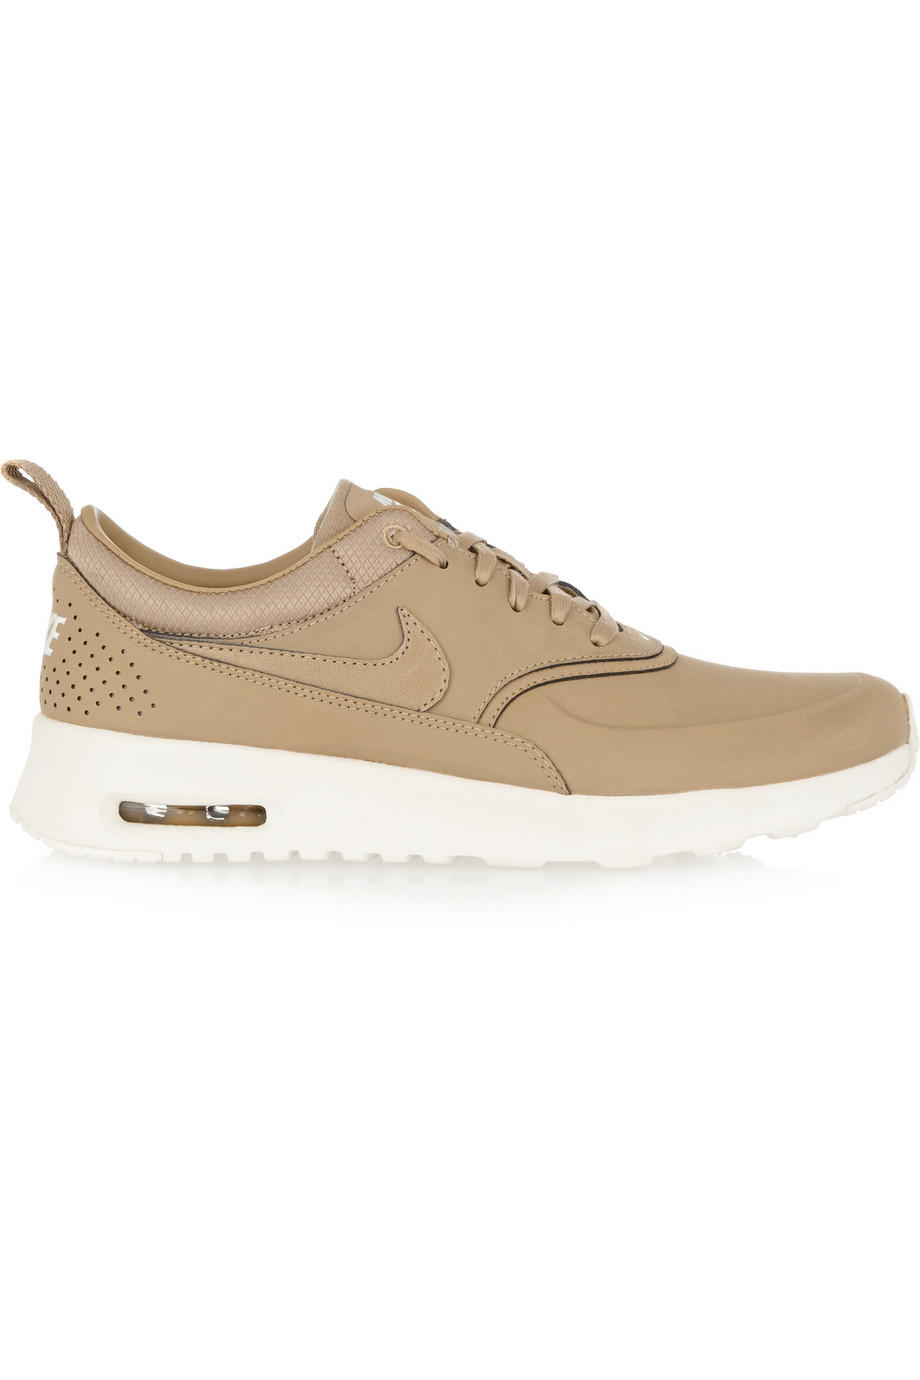 nike air max thea suede brown